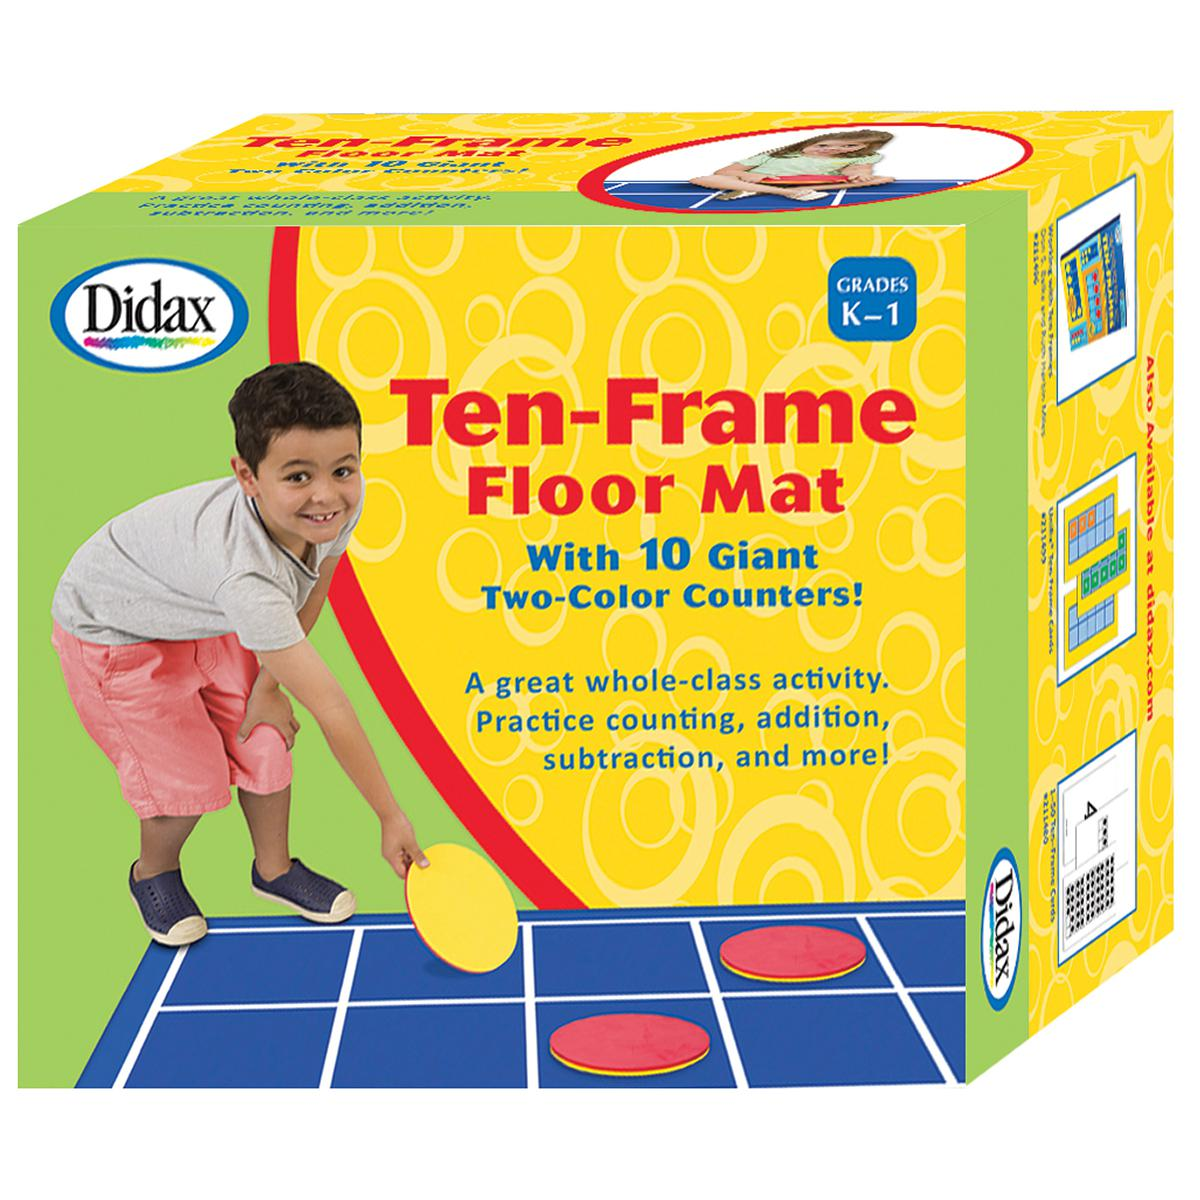 Giant Ten-Frame Floor Mat with Counters